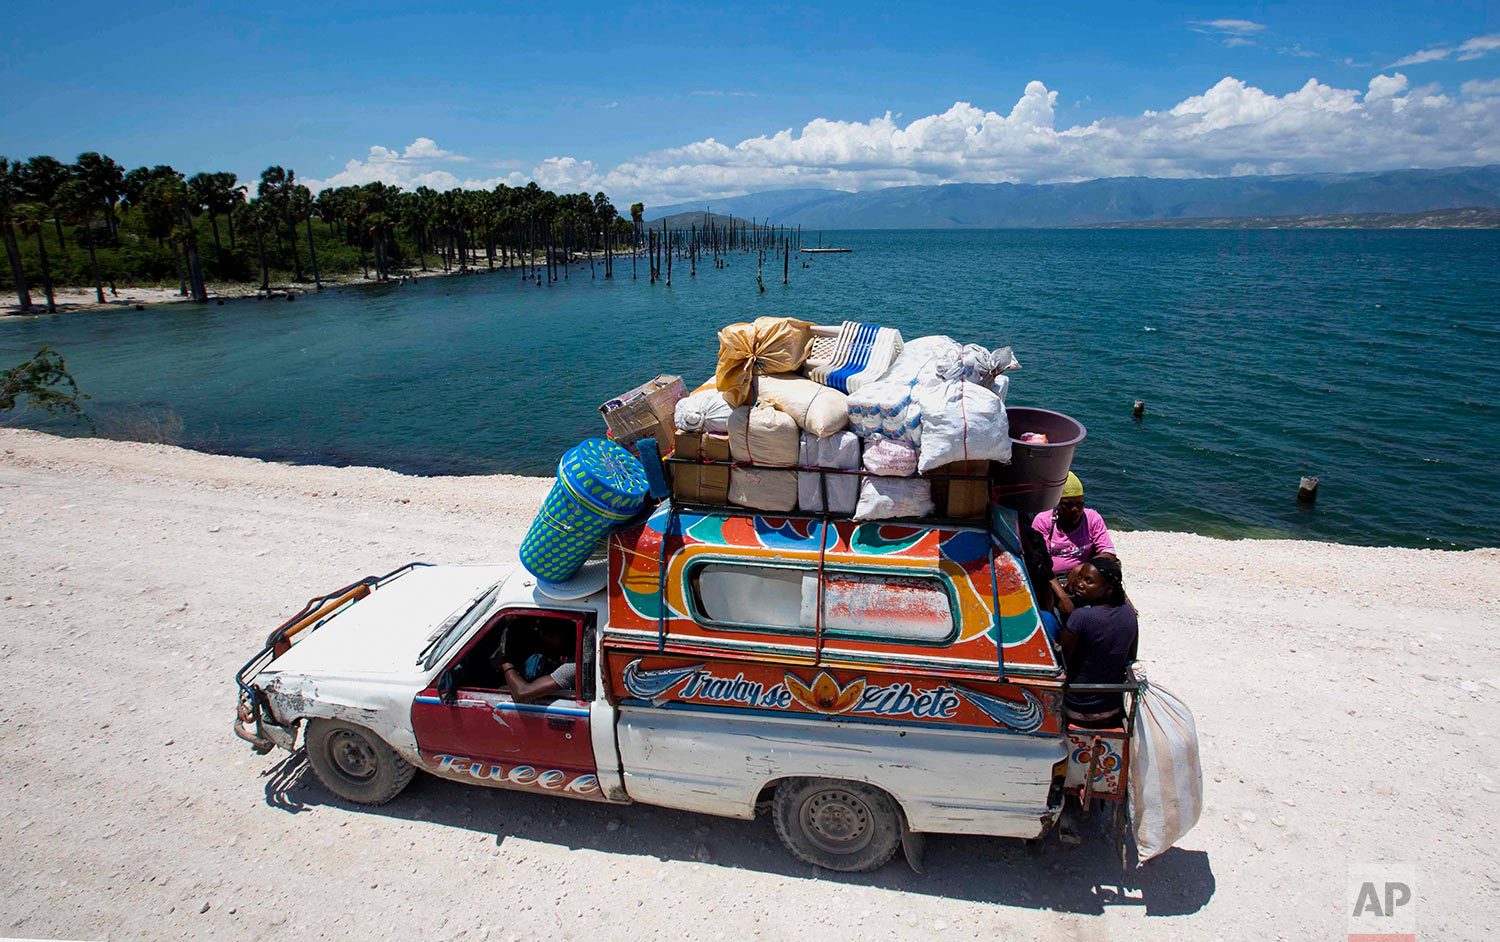 In this April 26, 2018 photo, people ride in a loaded truck, serving as public transportation, on the highway that leads to the Dominican Republic along the shore of Lake Azuei in Fond Parisien, Haiti.(AP Photo/Dieu Nalio Chery)